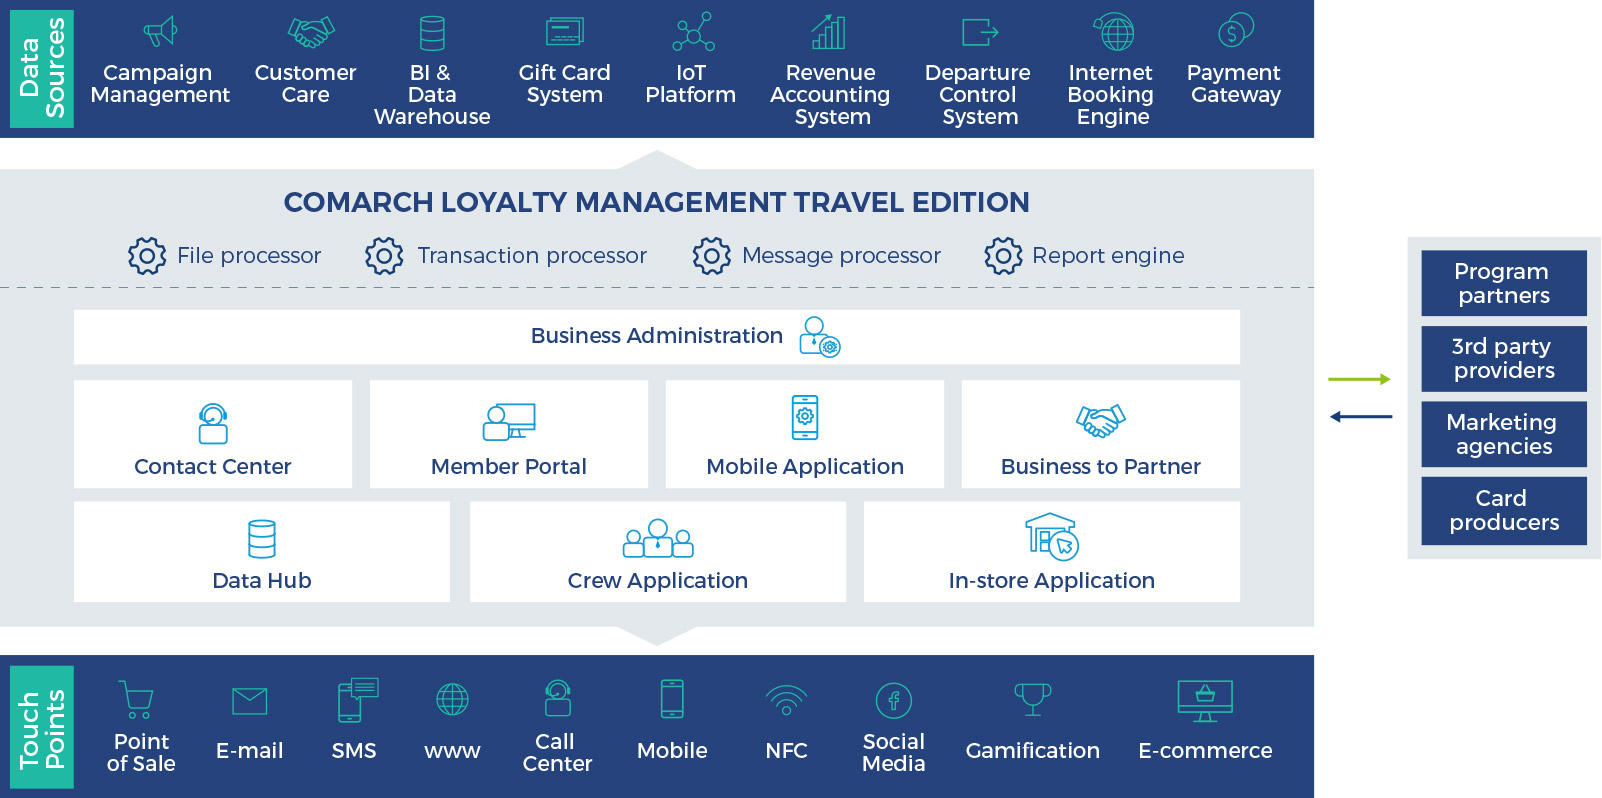 Airline loyalty programs, Loyalty Travel Edition